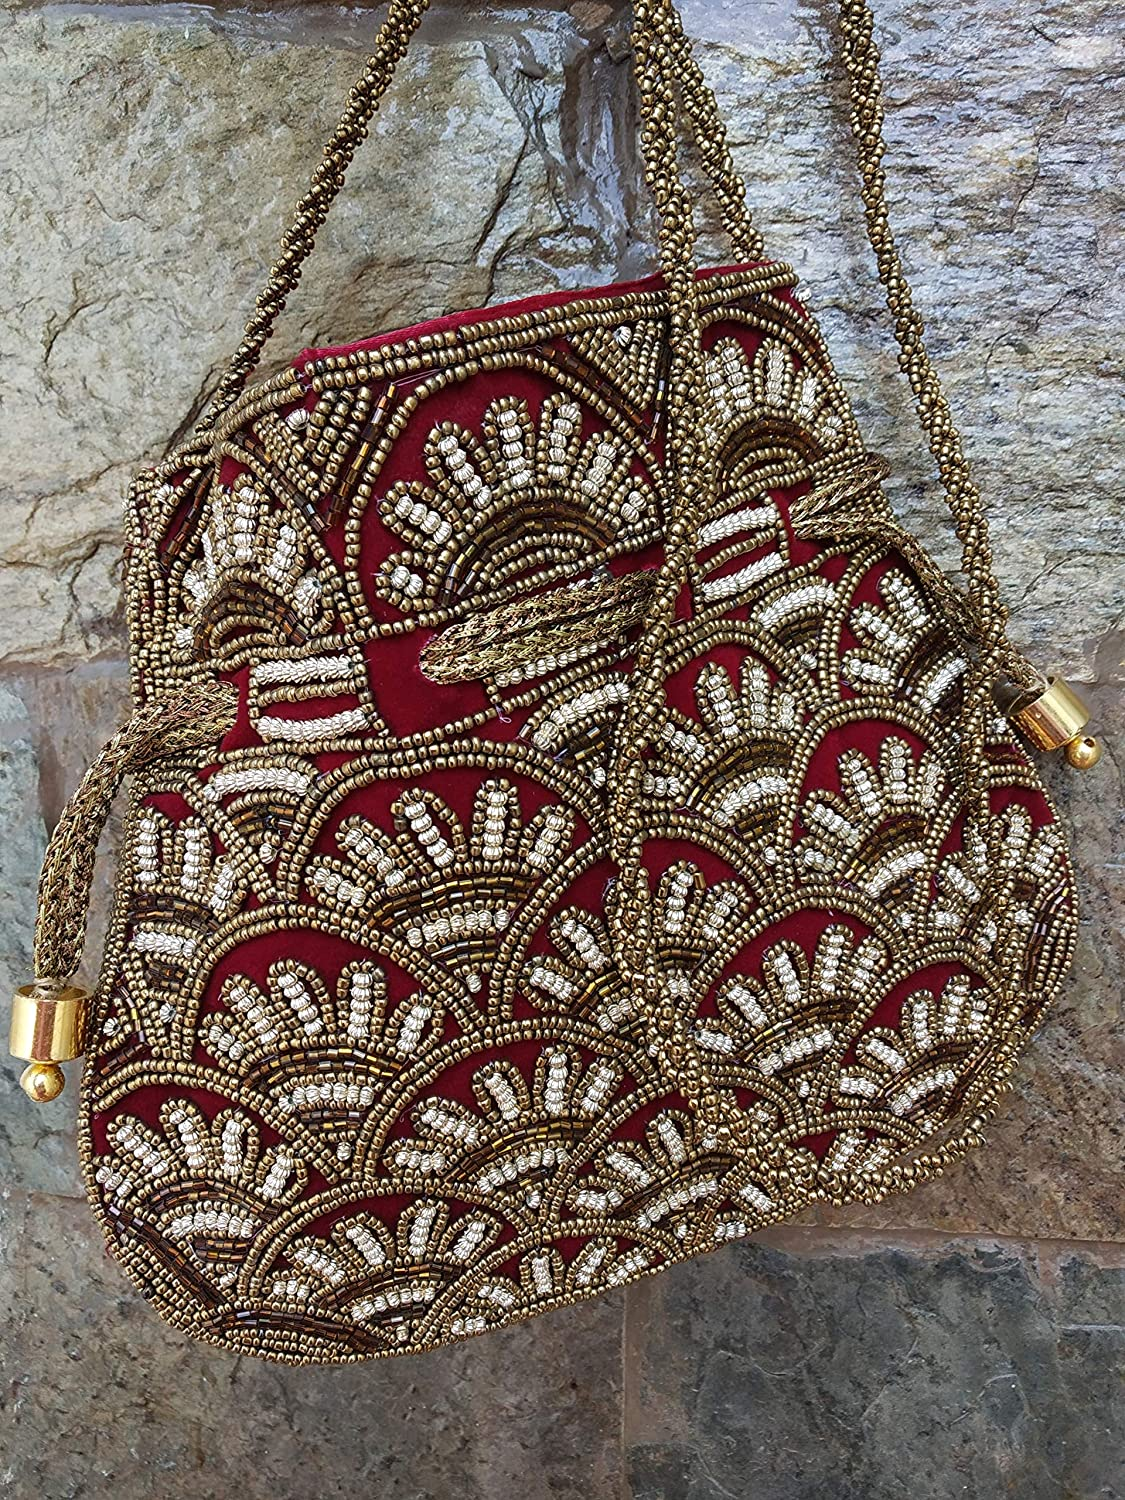 Artcraving Womens Handmade Embroidered Potli Bag/Pouch/Handbag - Drawstring Purse with Party Clutch and Wooden Beads for Weddings, Special Occasions (Red)